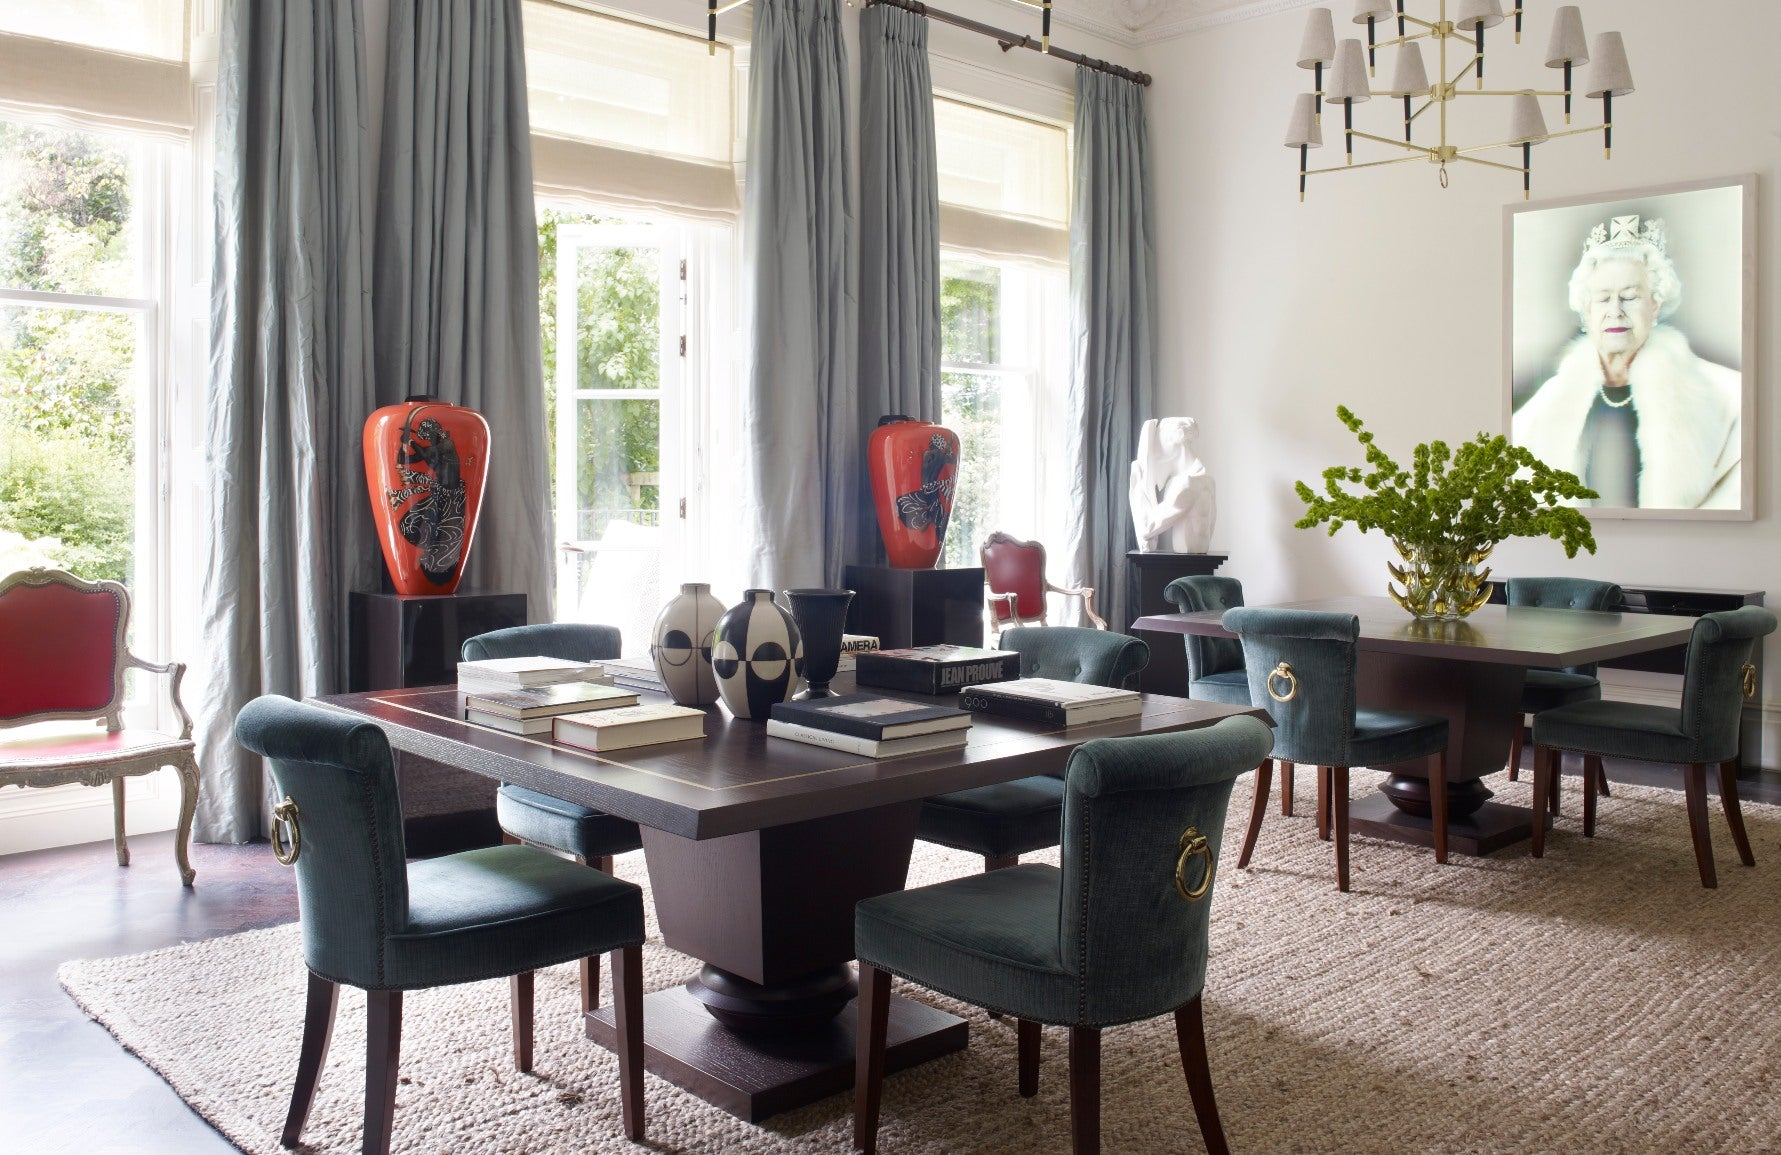 Green, Blue and Neutral Dining Room – Dining Room Colour Palettes - Dining Room Colour Schemes & Colour Combination ideas – Read in the LuxDeco.com Style Guide